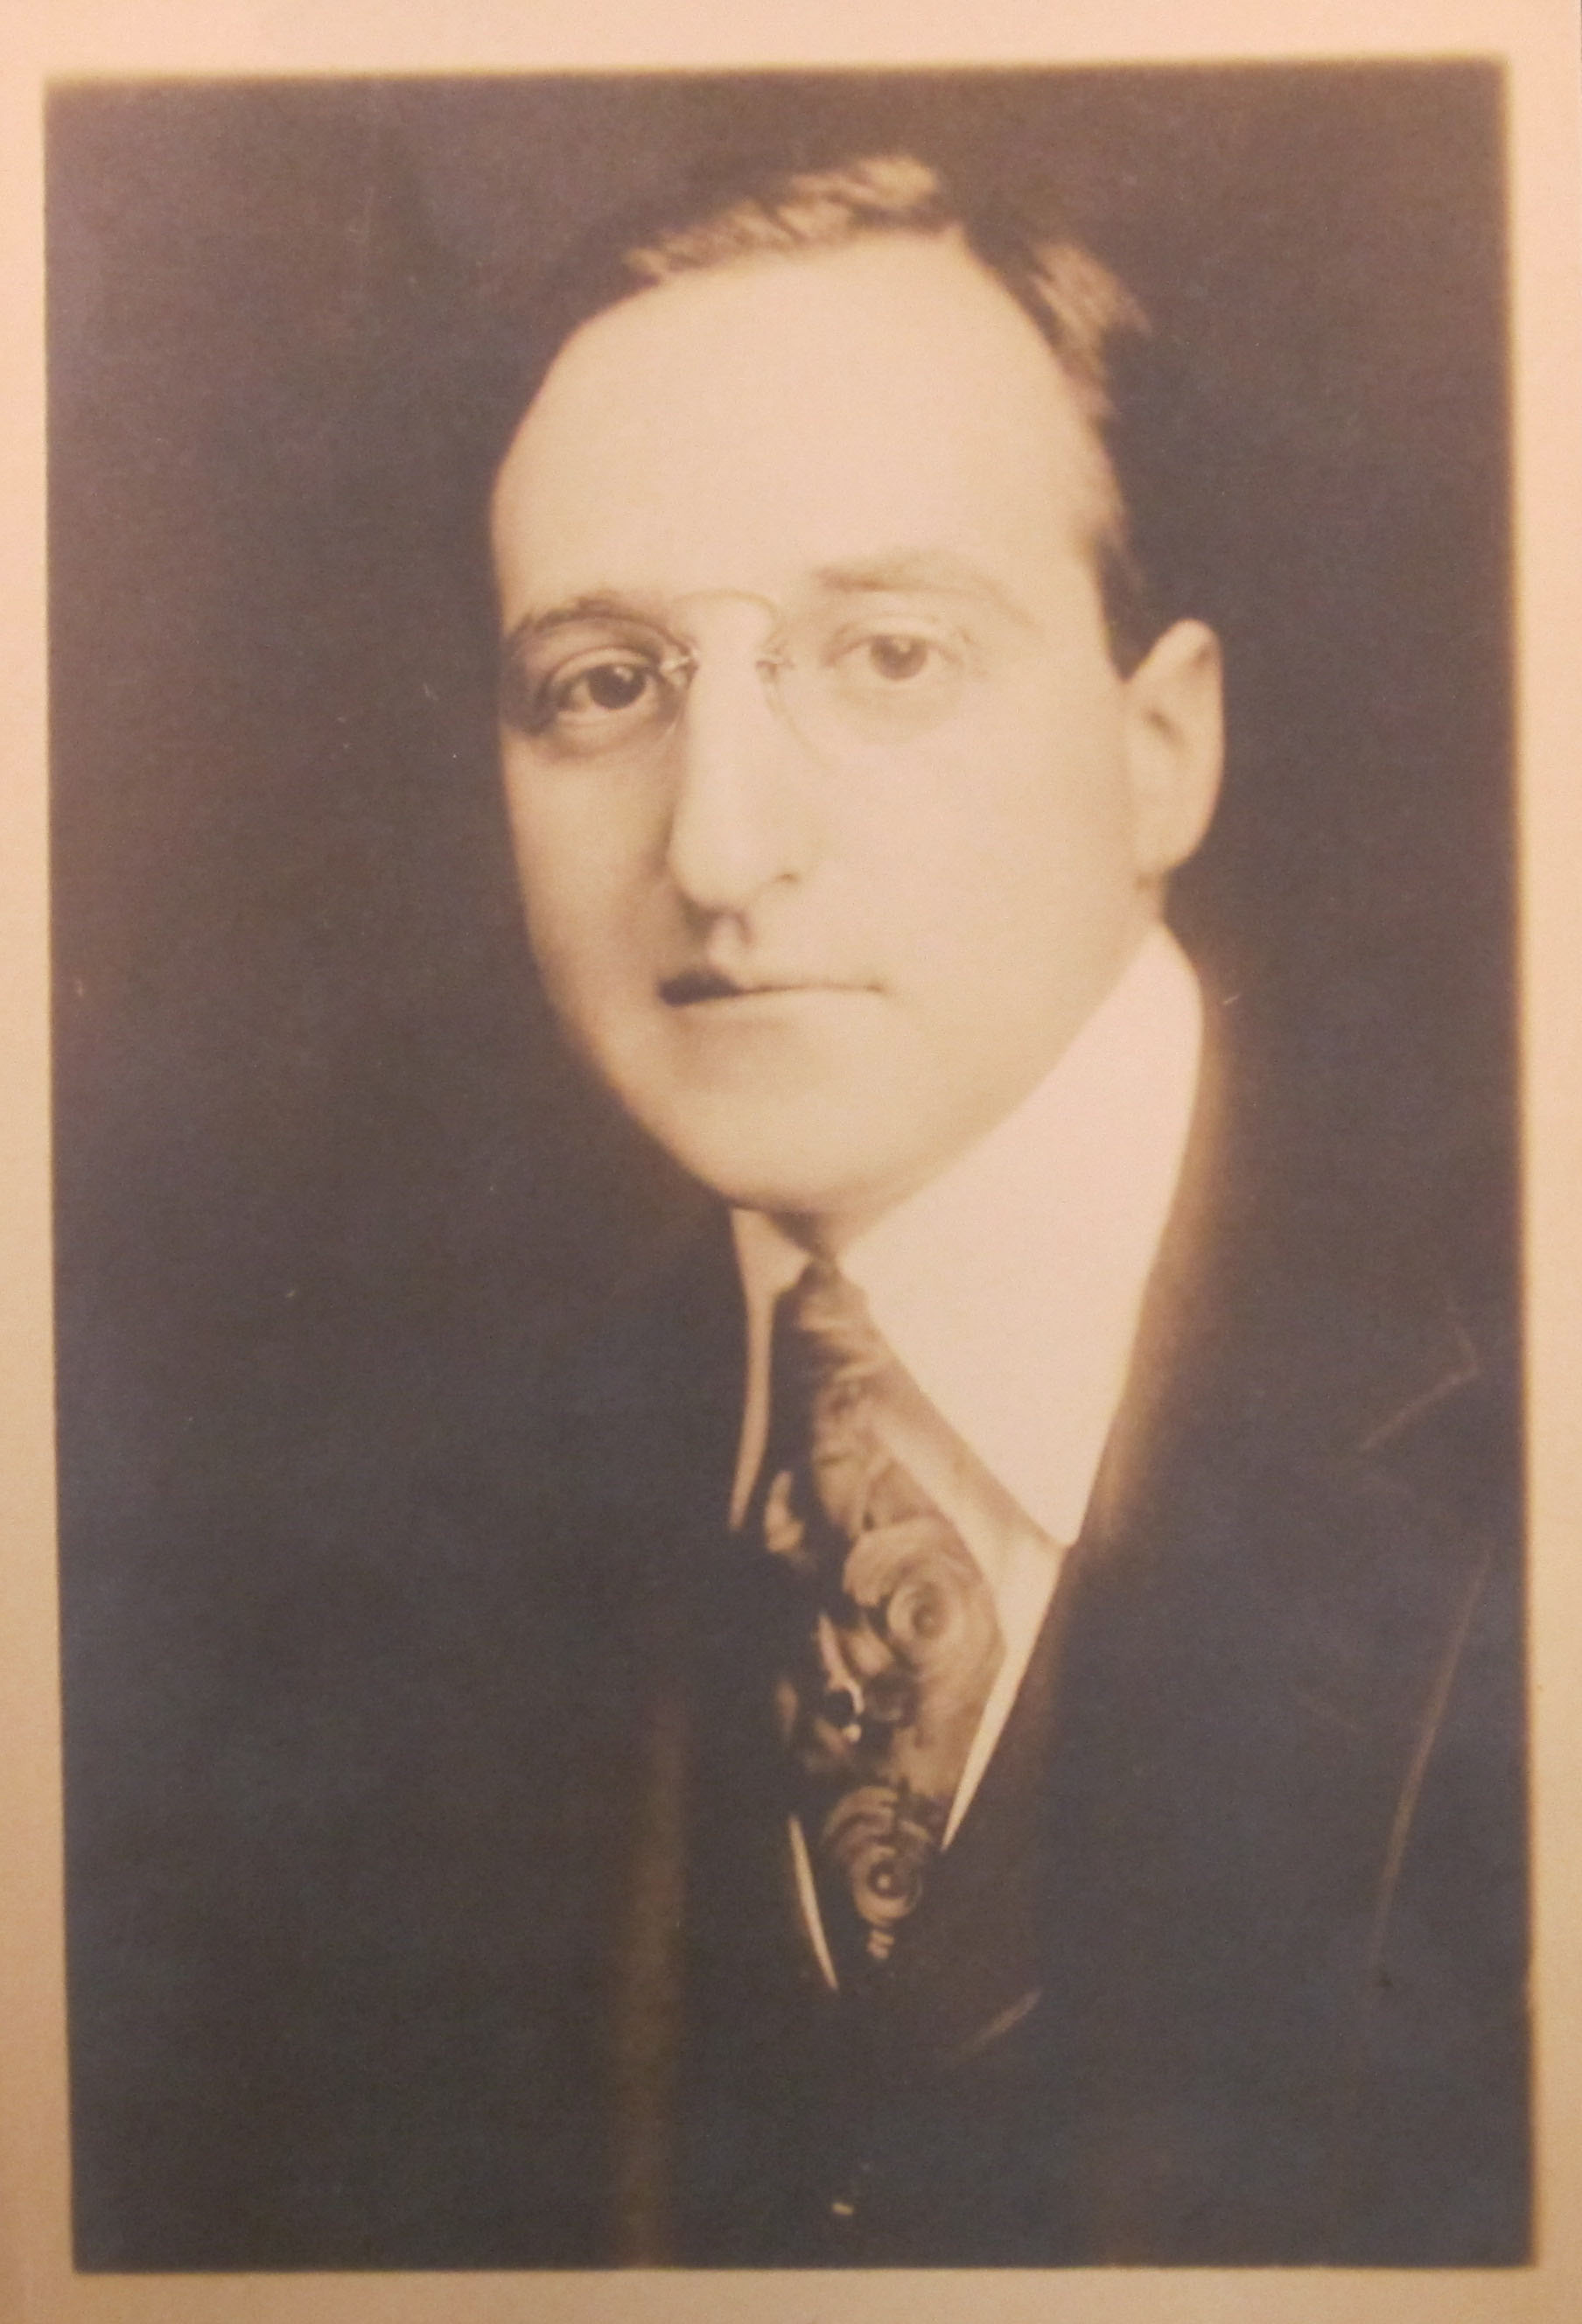 Undated photograph of the Louis Untermeyer. (Barrett Print Files. Clifton Waller Barrett Library of American Literature. Photograph by Petrina Jackson.)